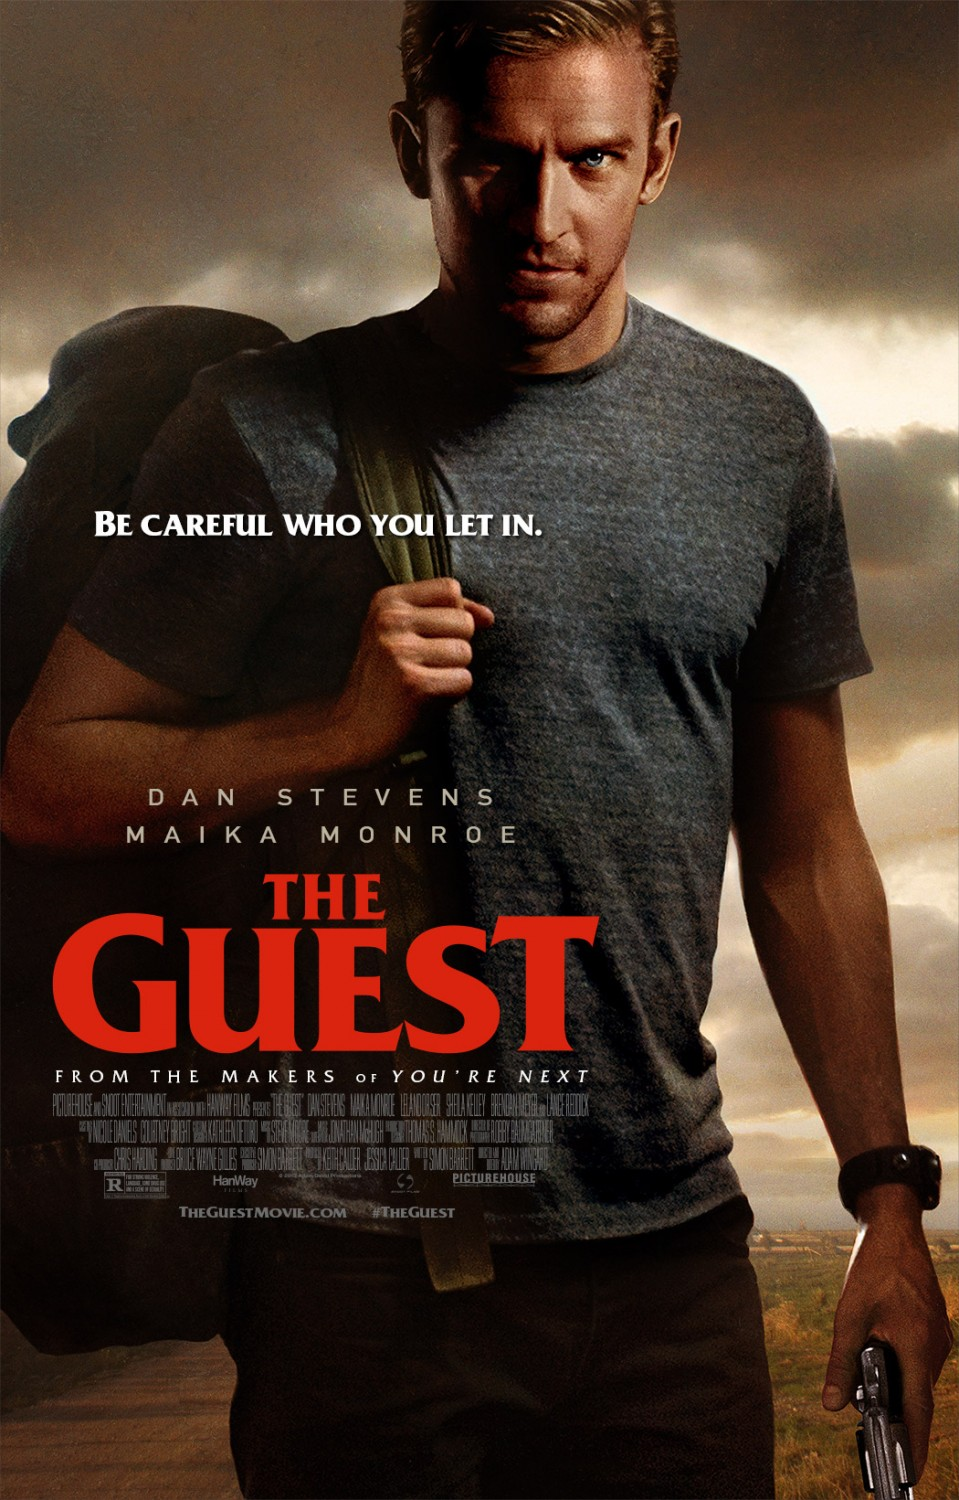 The Guest-Official Poster Banner PROMO XLG-22AGOSTO2014-1